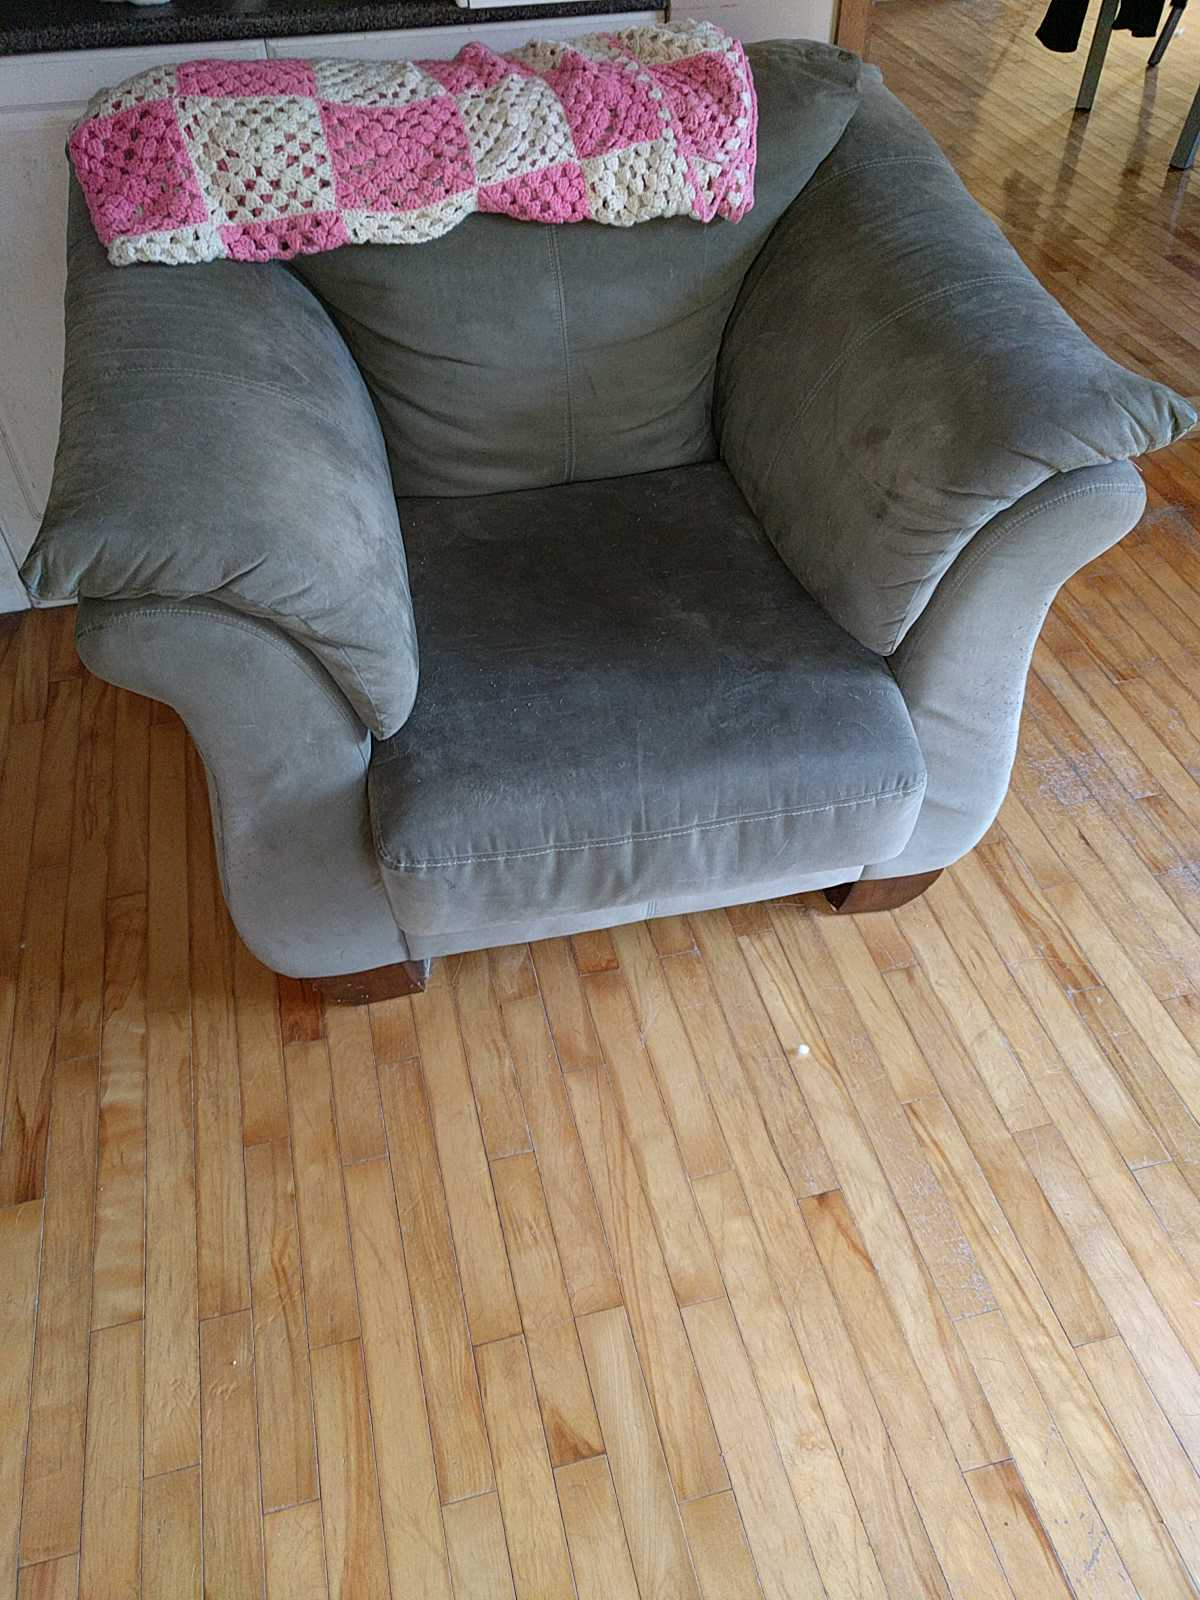 Large comfy green chair